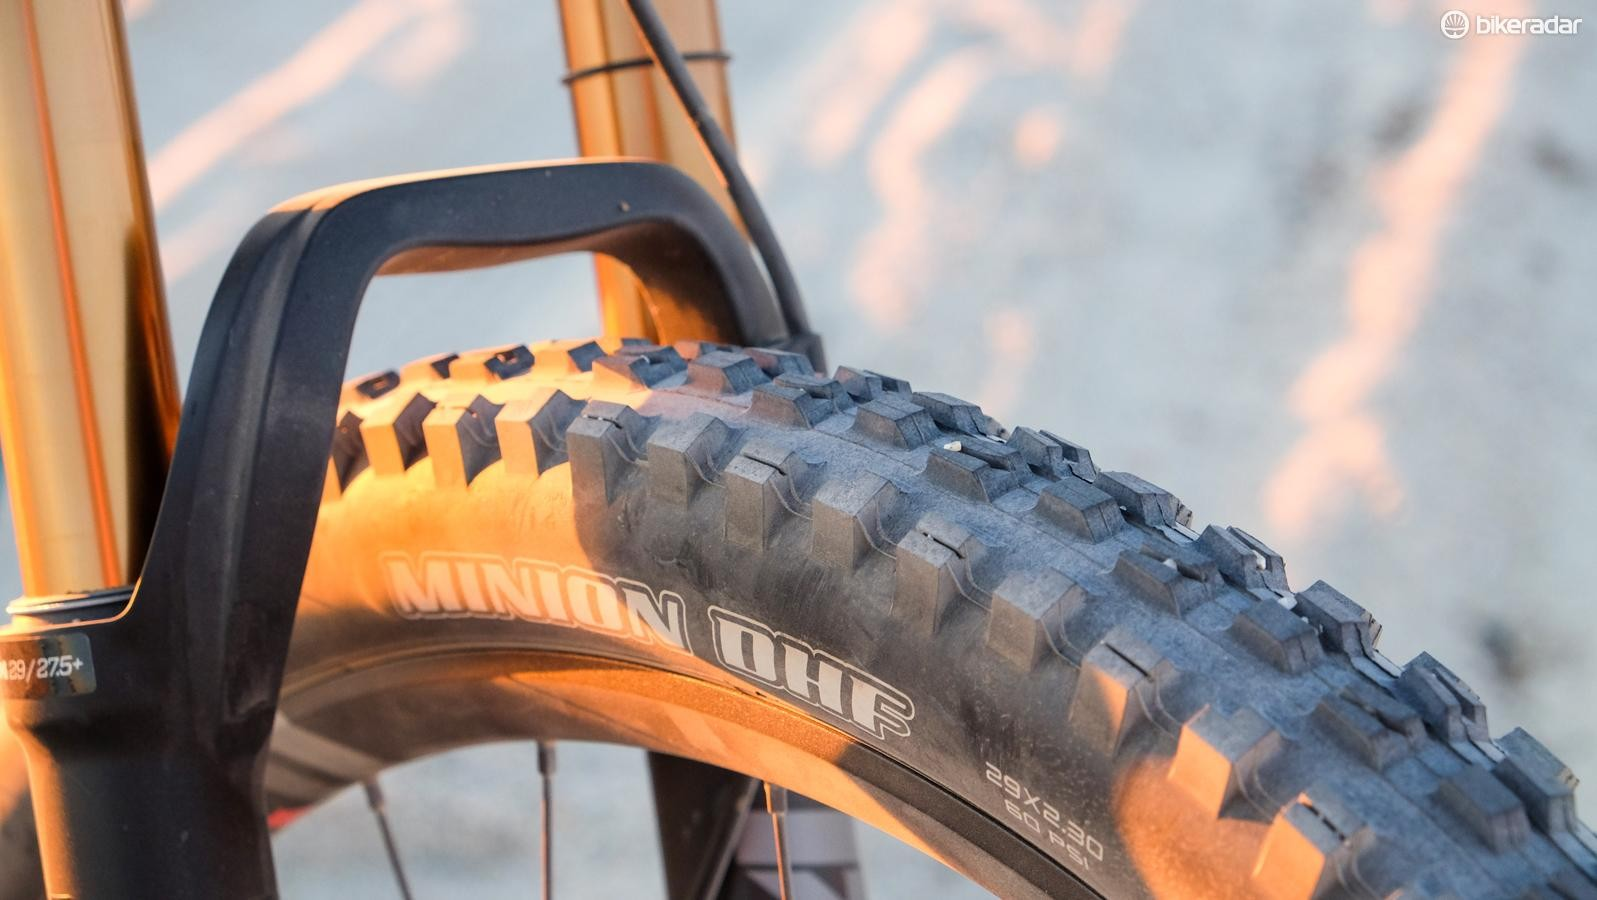 Up front, the SB100 wears a 29x2.3in Maxxis Minion DHF